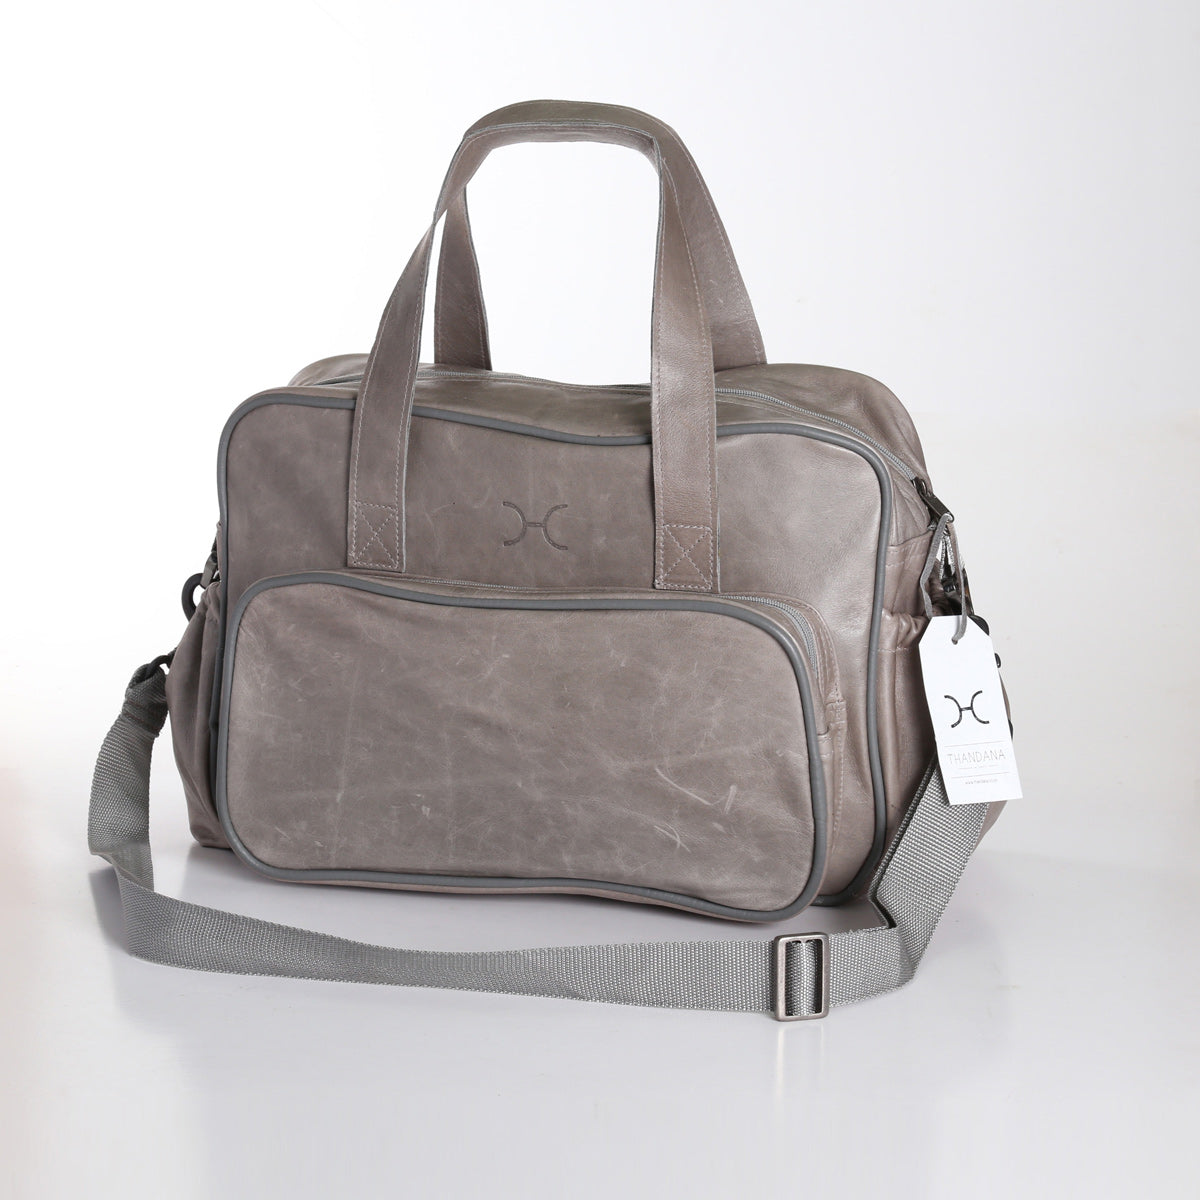 Thandana Nappy Bag - Grey - Zufrique Boutique